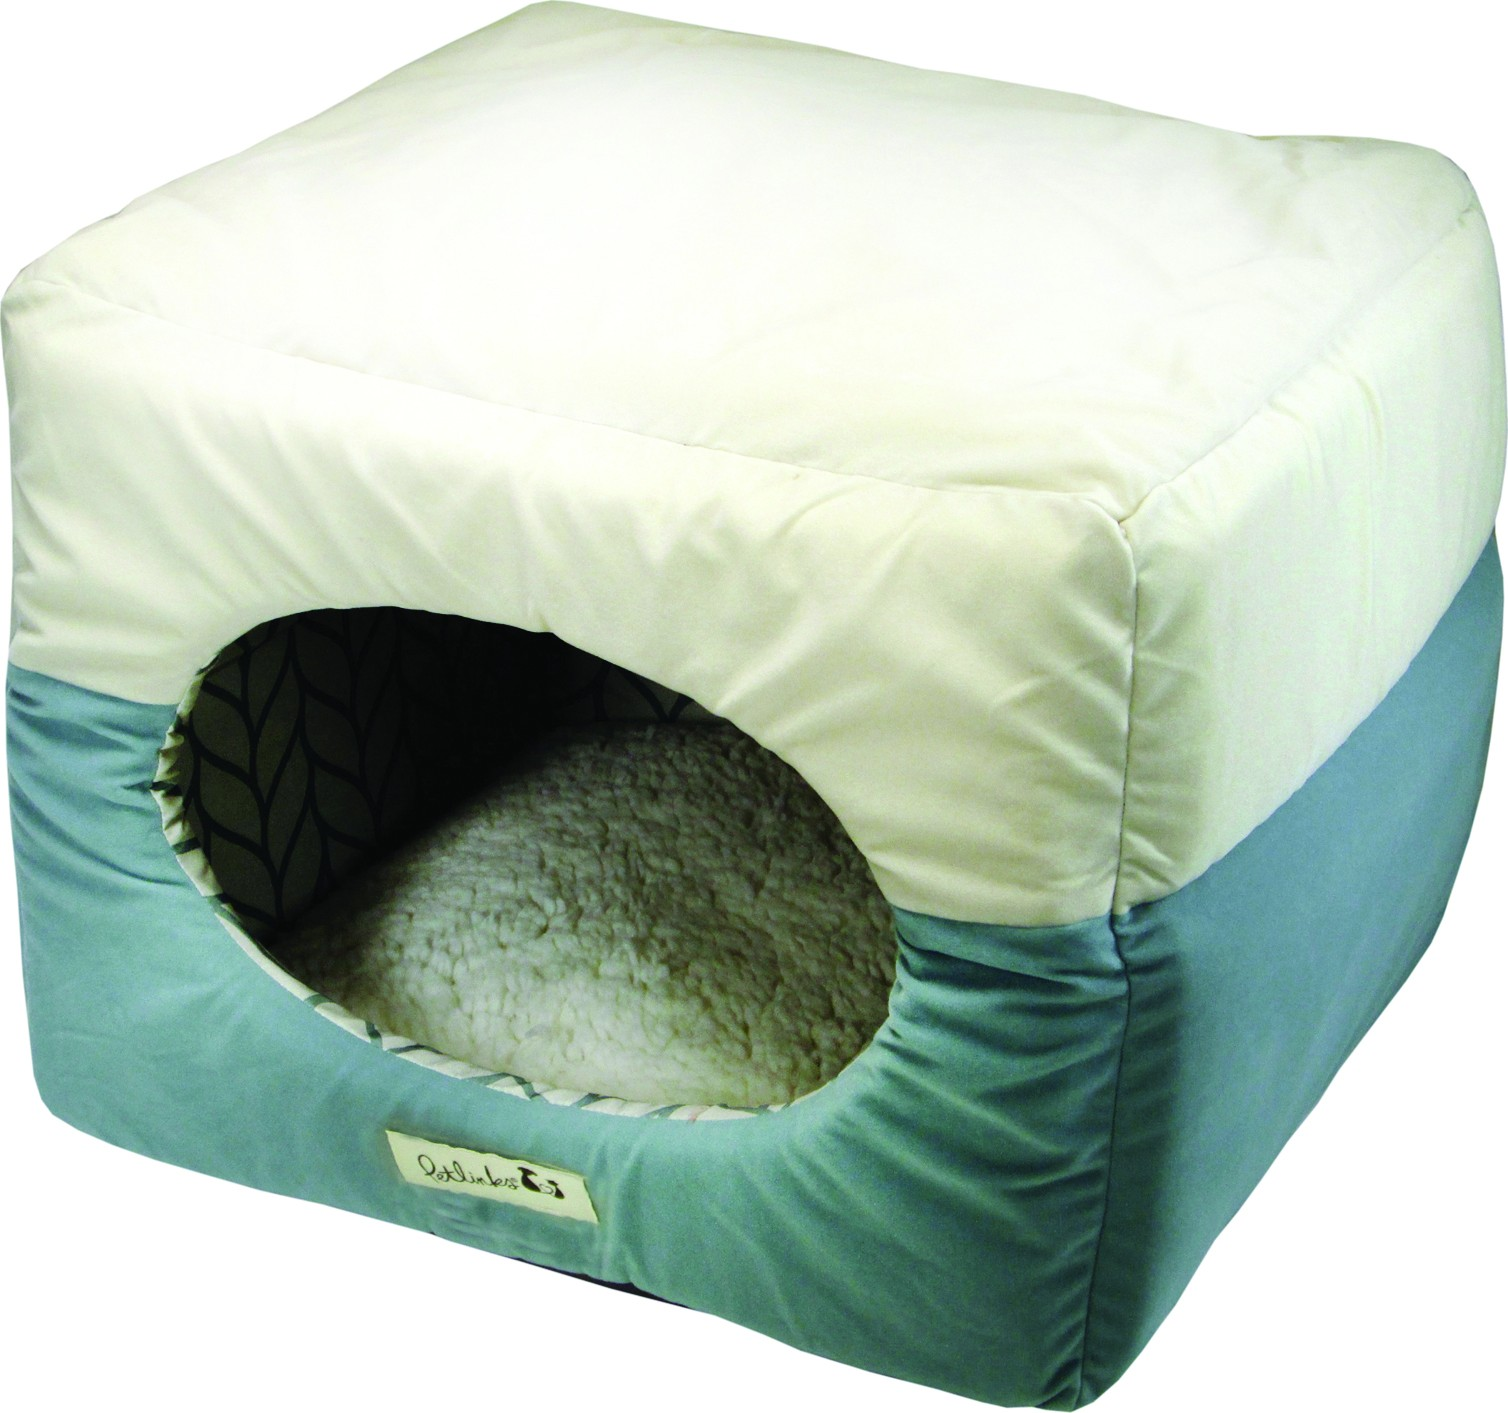 DOUBLE DREAMER CAT BED